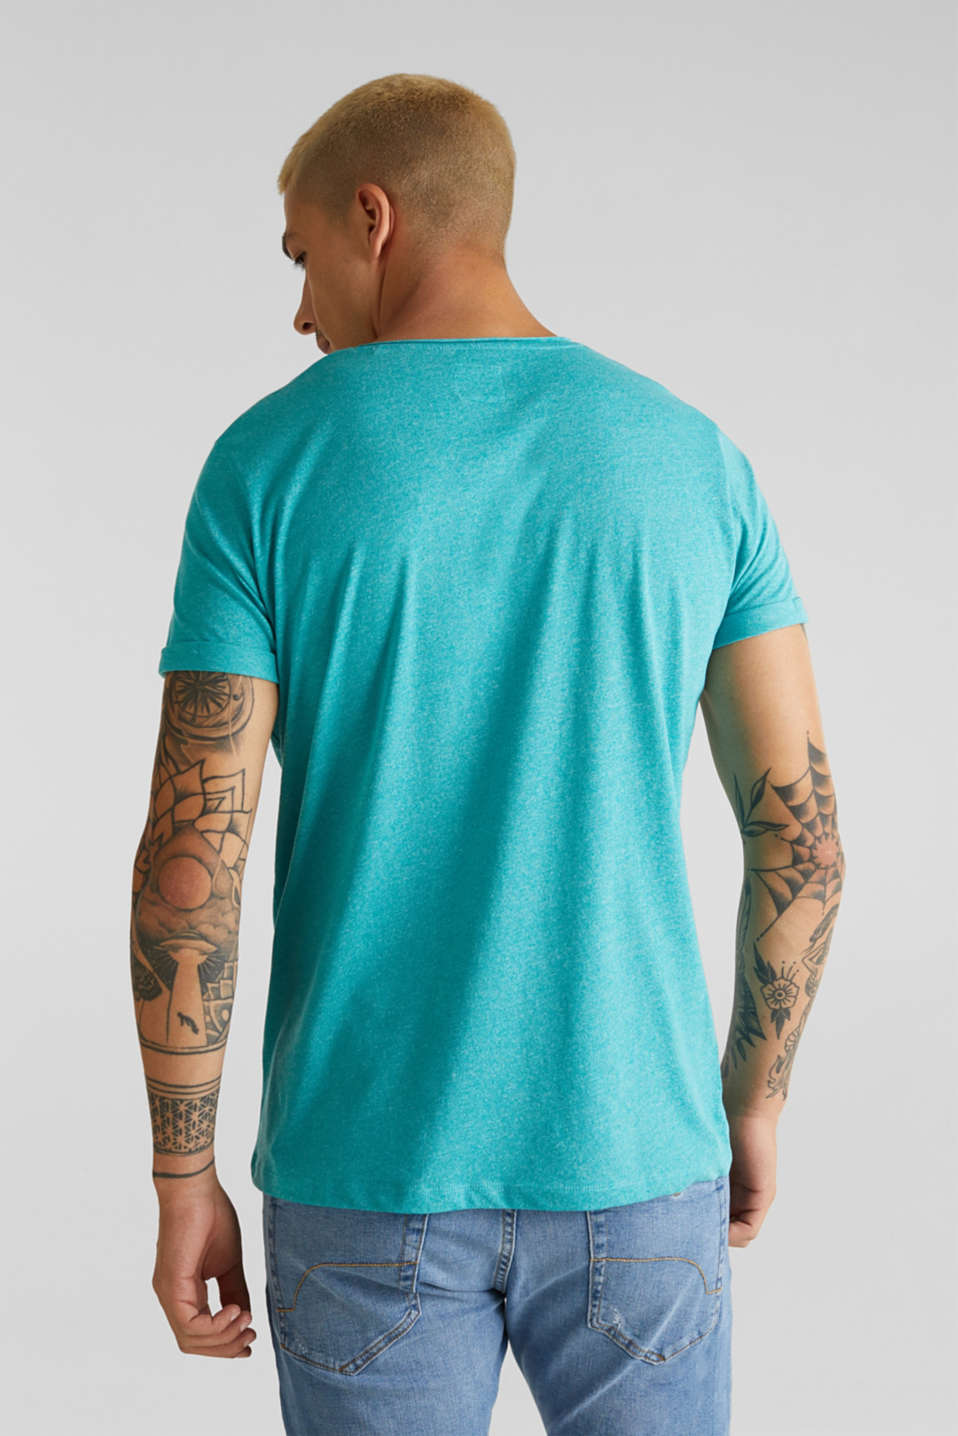 Jersey T-shirt in a casual look, LIGHT AQUA GREEN 5, detail image number 3